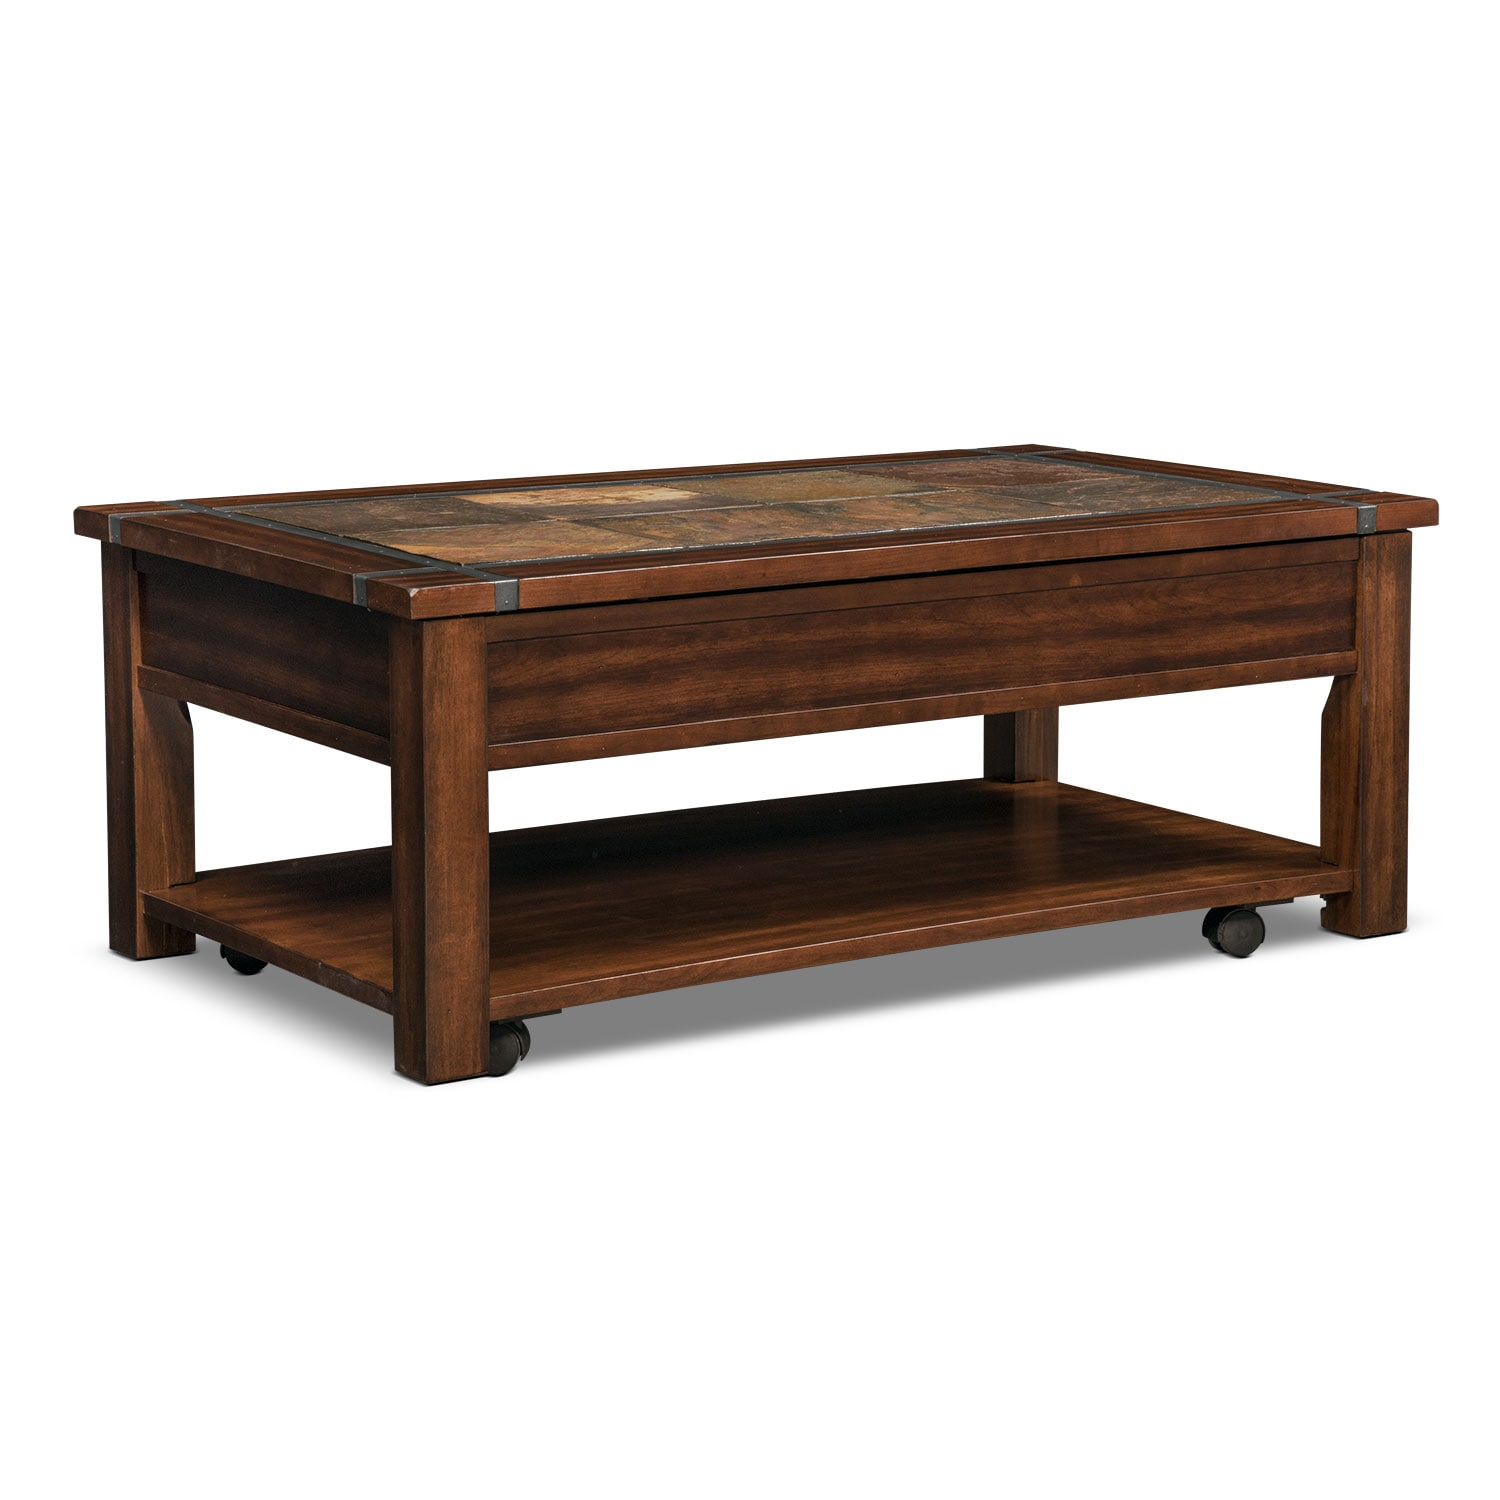 Accent and Occasional Furniture - Slate Ridge Lift-Top Cocktail Table - Cherry